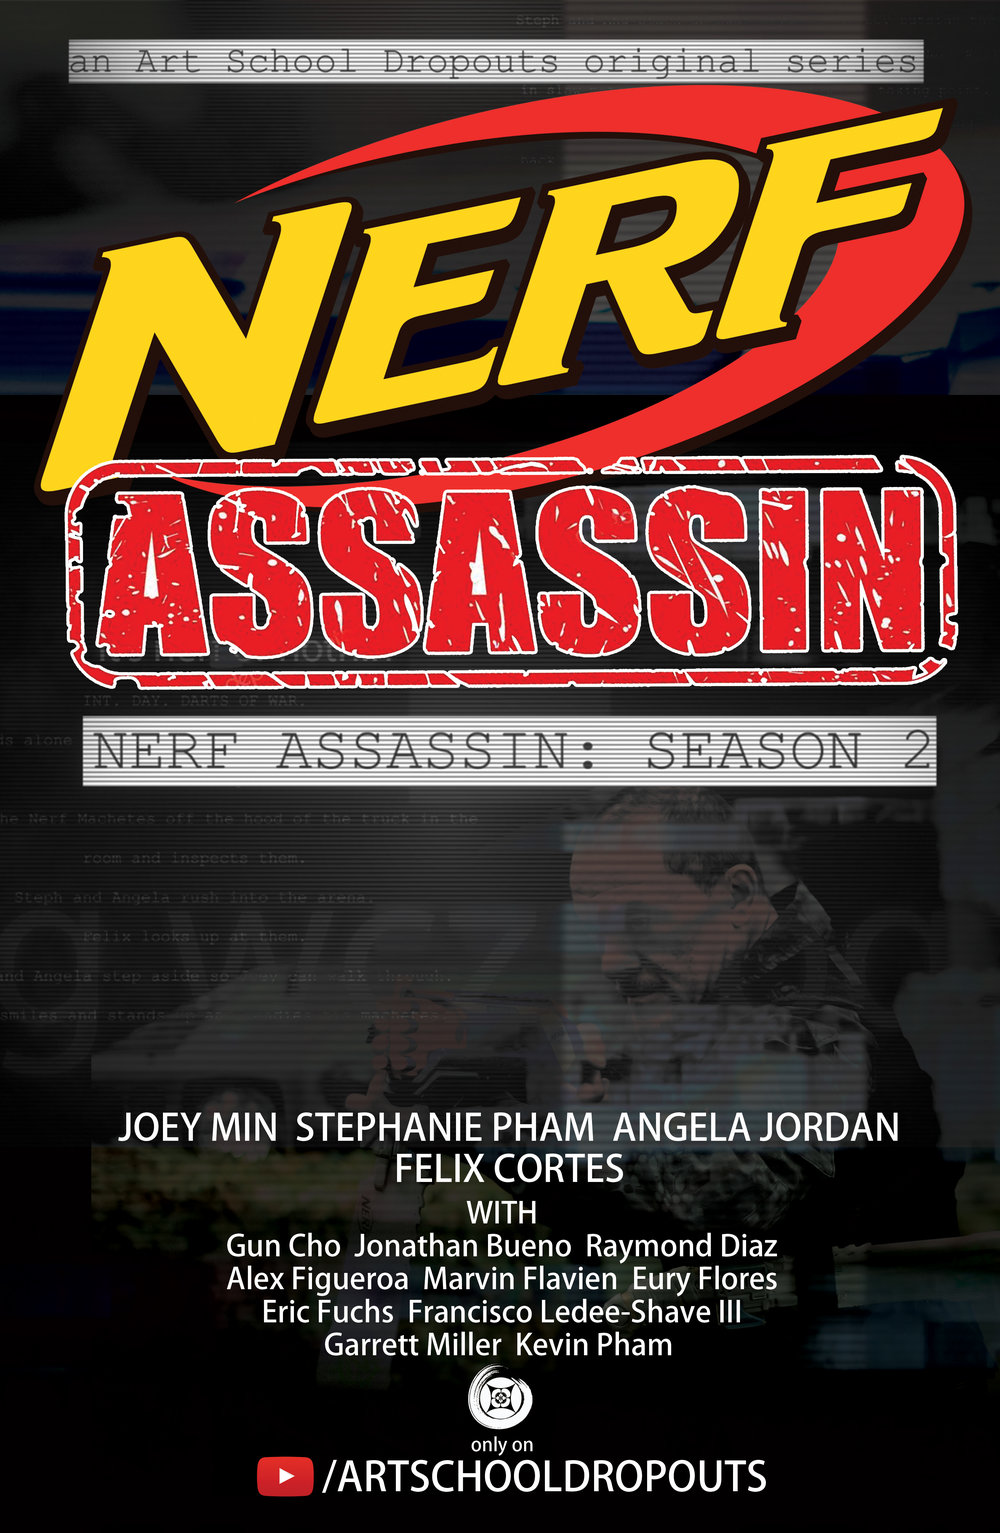 Nerf-Assassin-Season-2-Poster.jpg